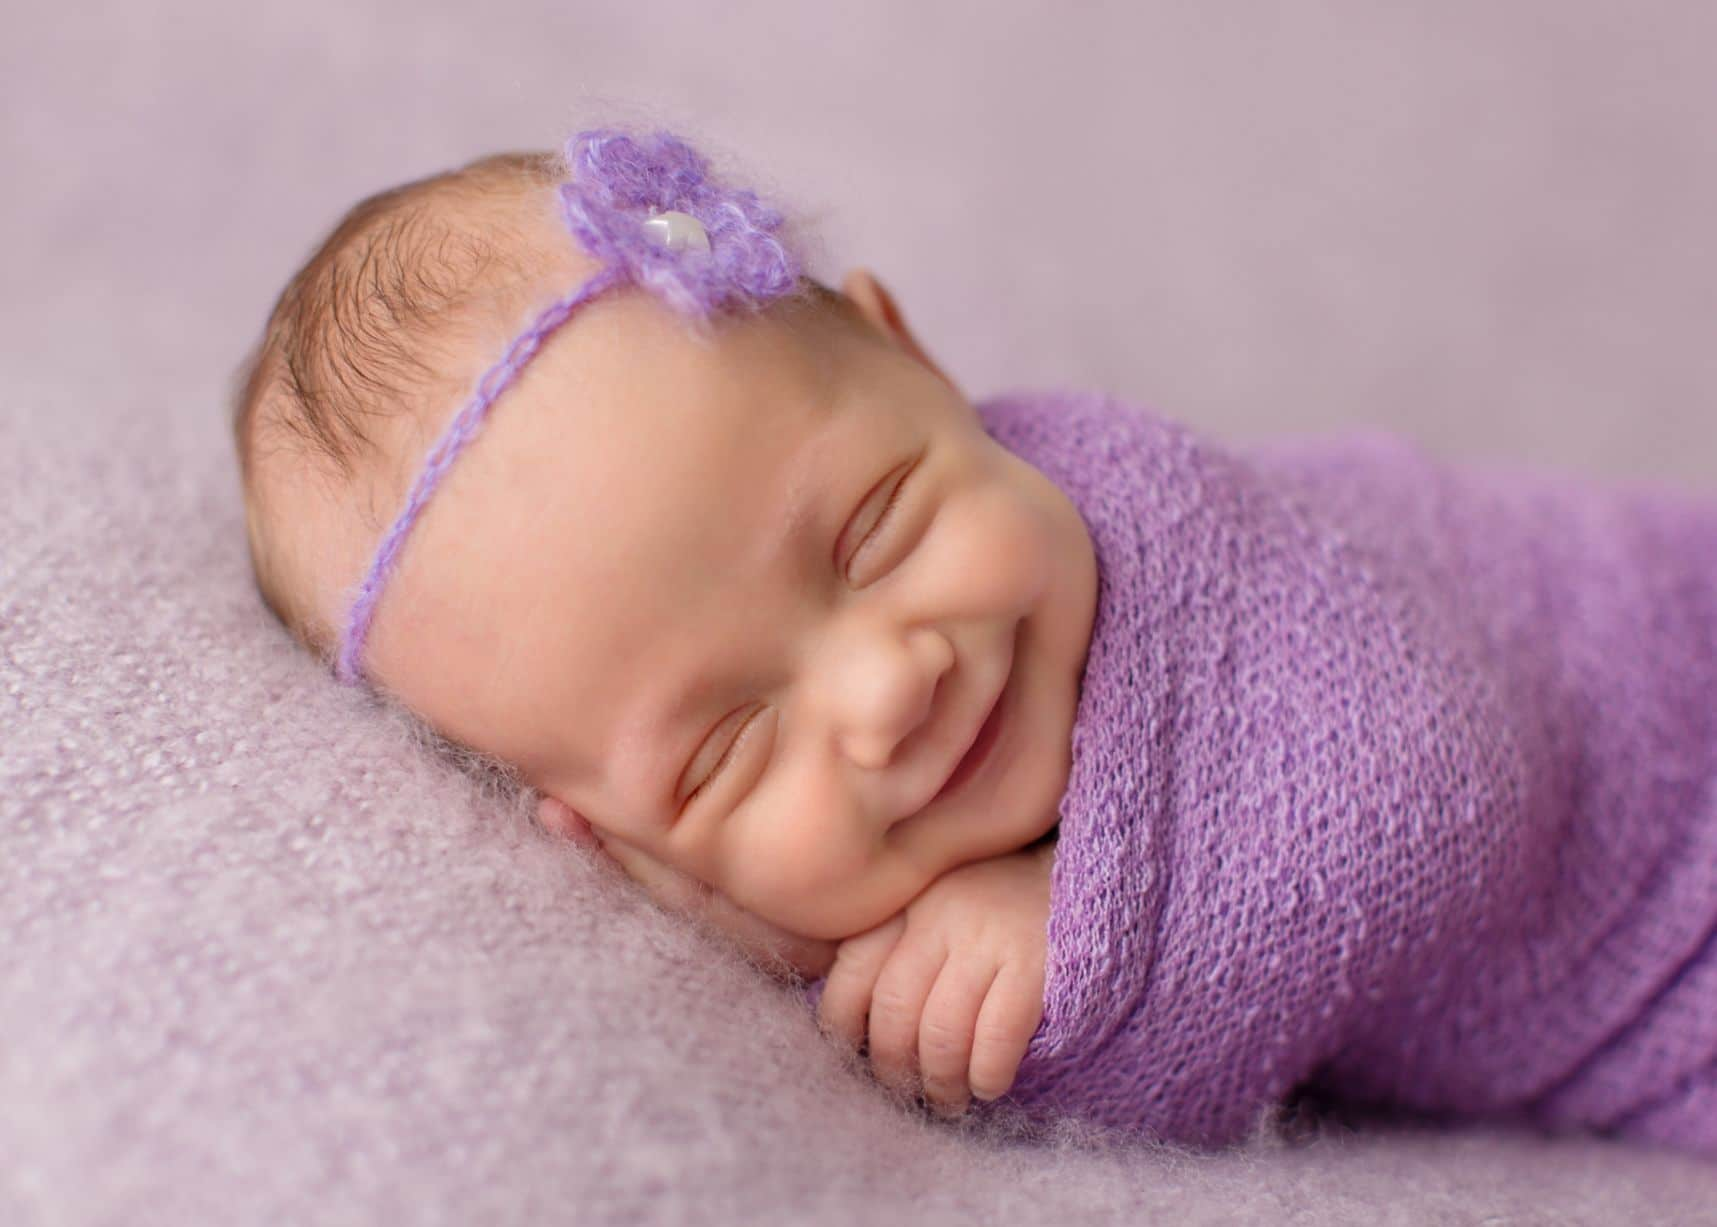 netloid_absolutely-heart-melting-pictures-of-smiling-babies-by-sandi-ford-newborn-photography6